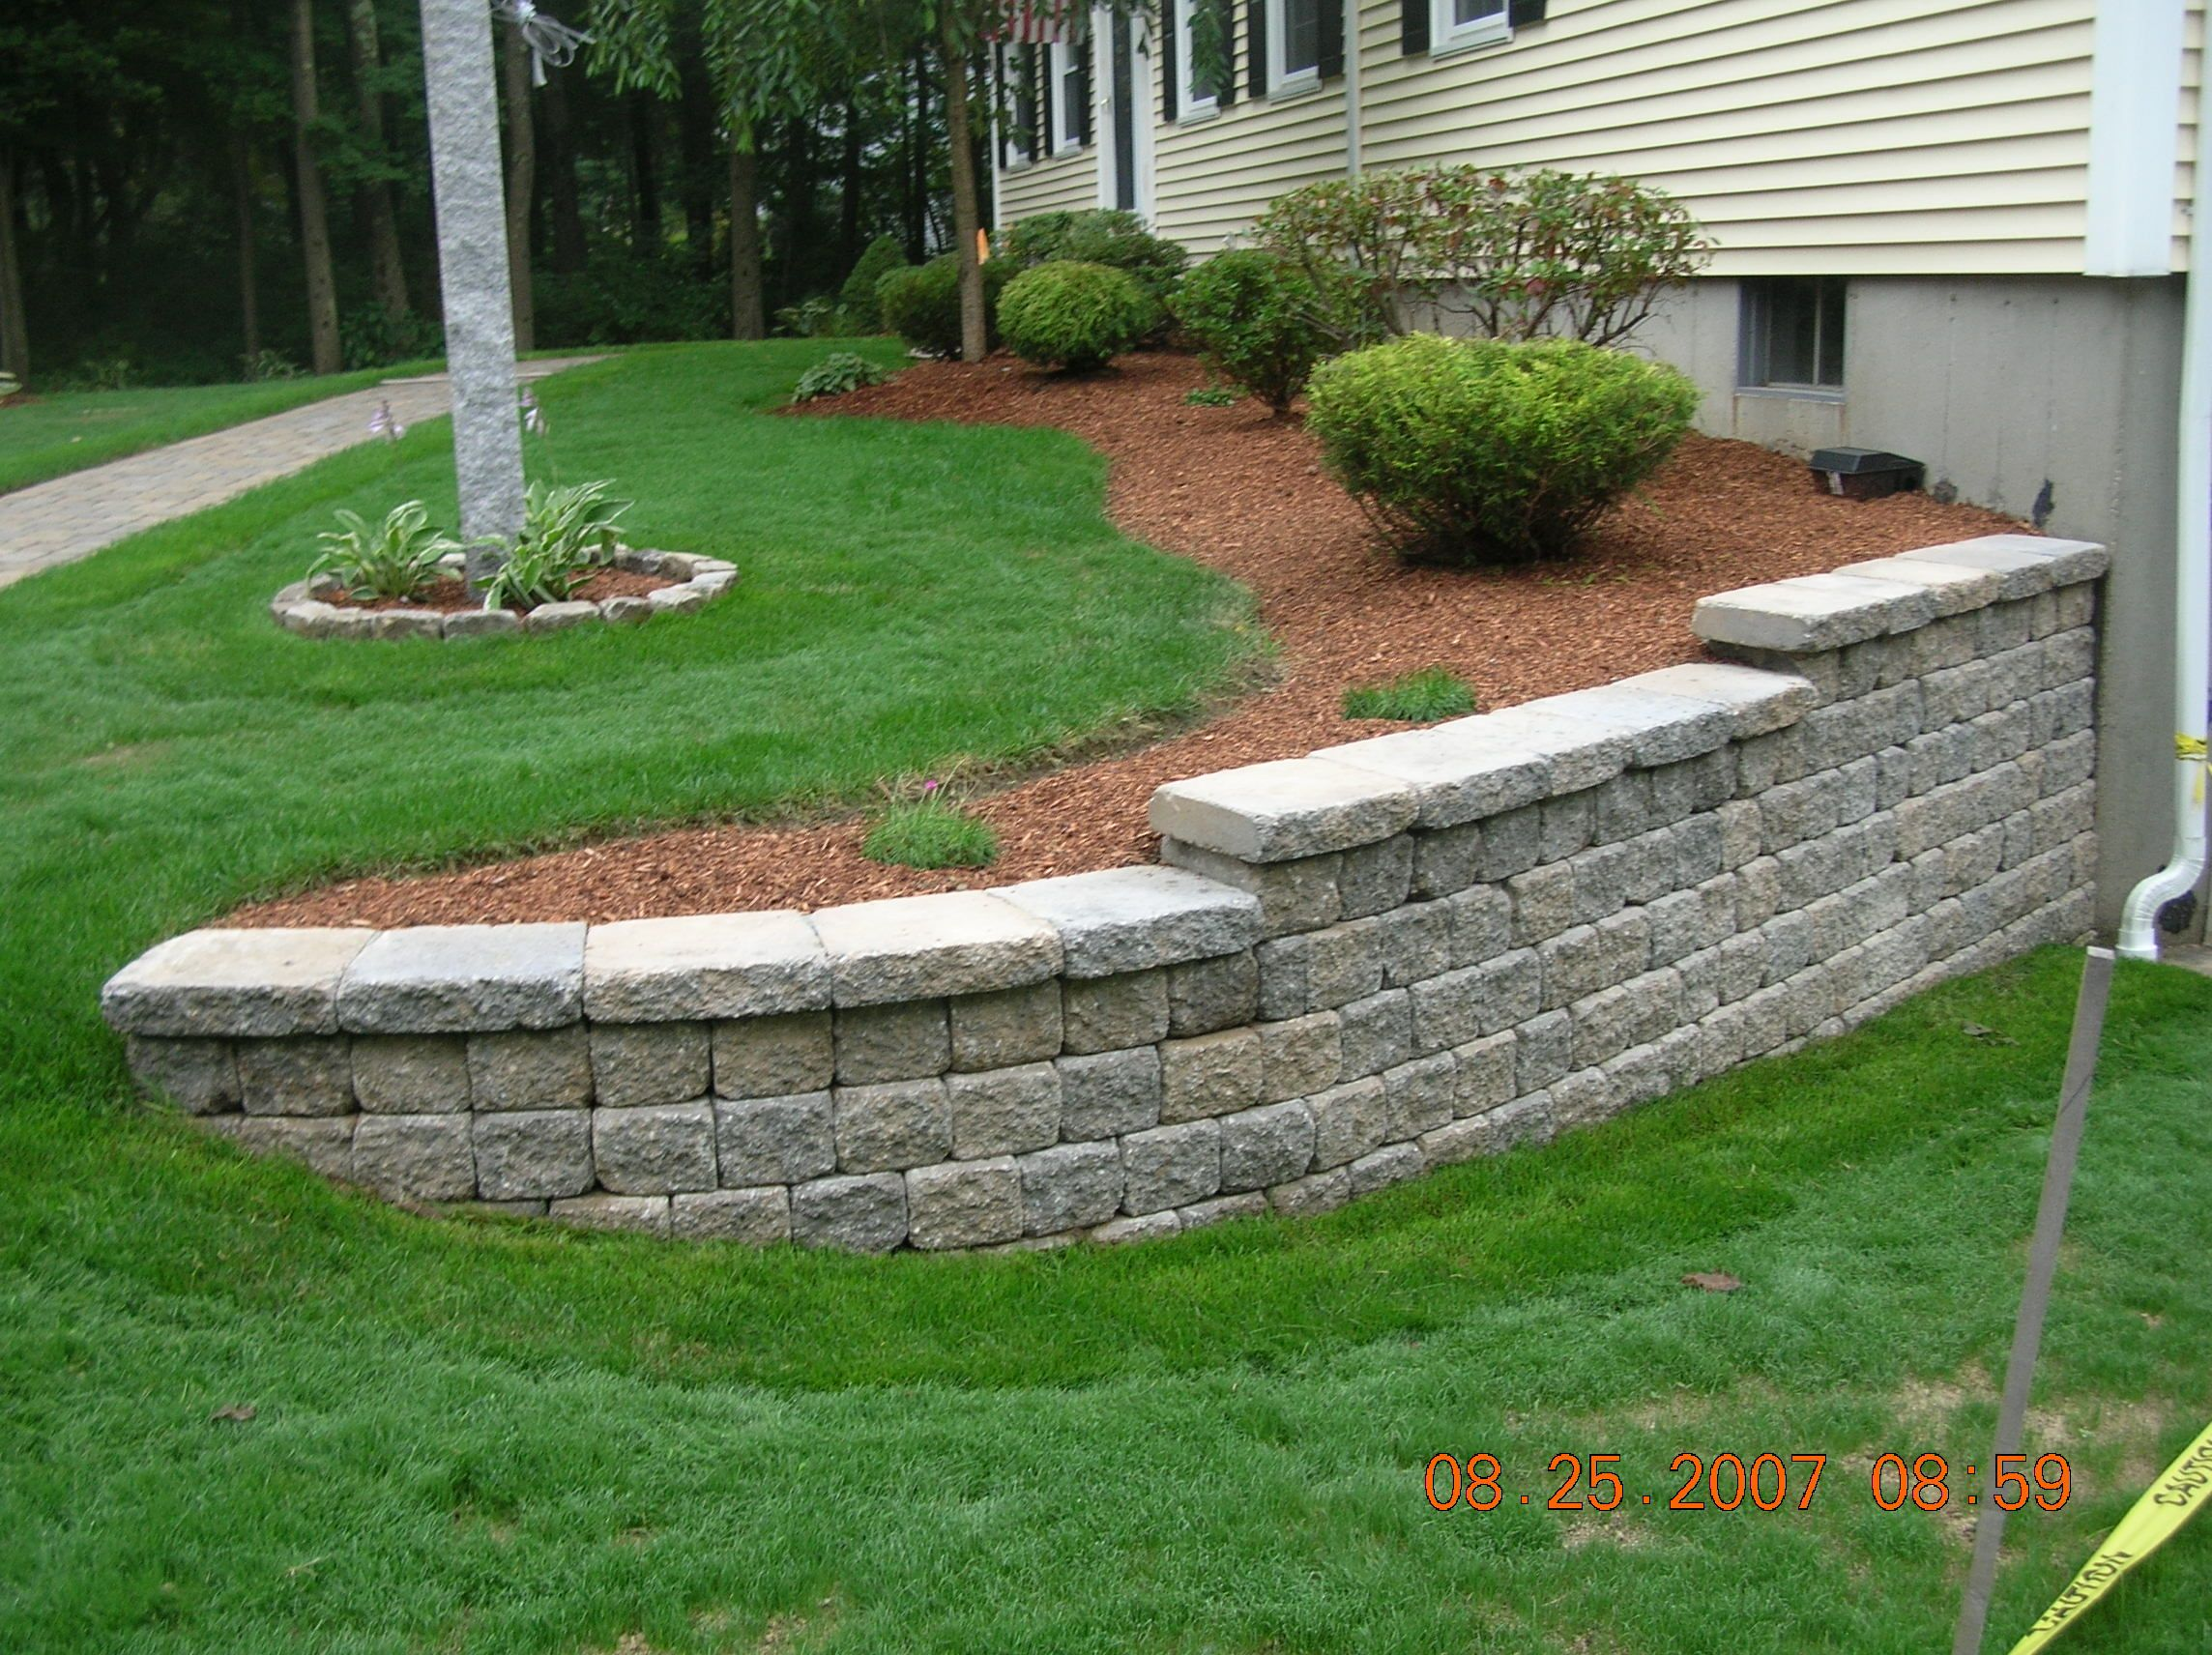 Superb wall landscaping 2 landscape retaining wall blocks for Landscape blocks